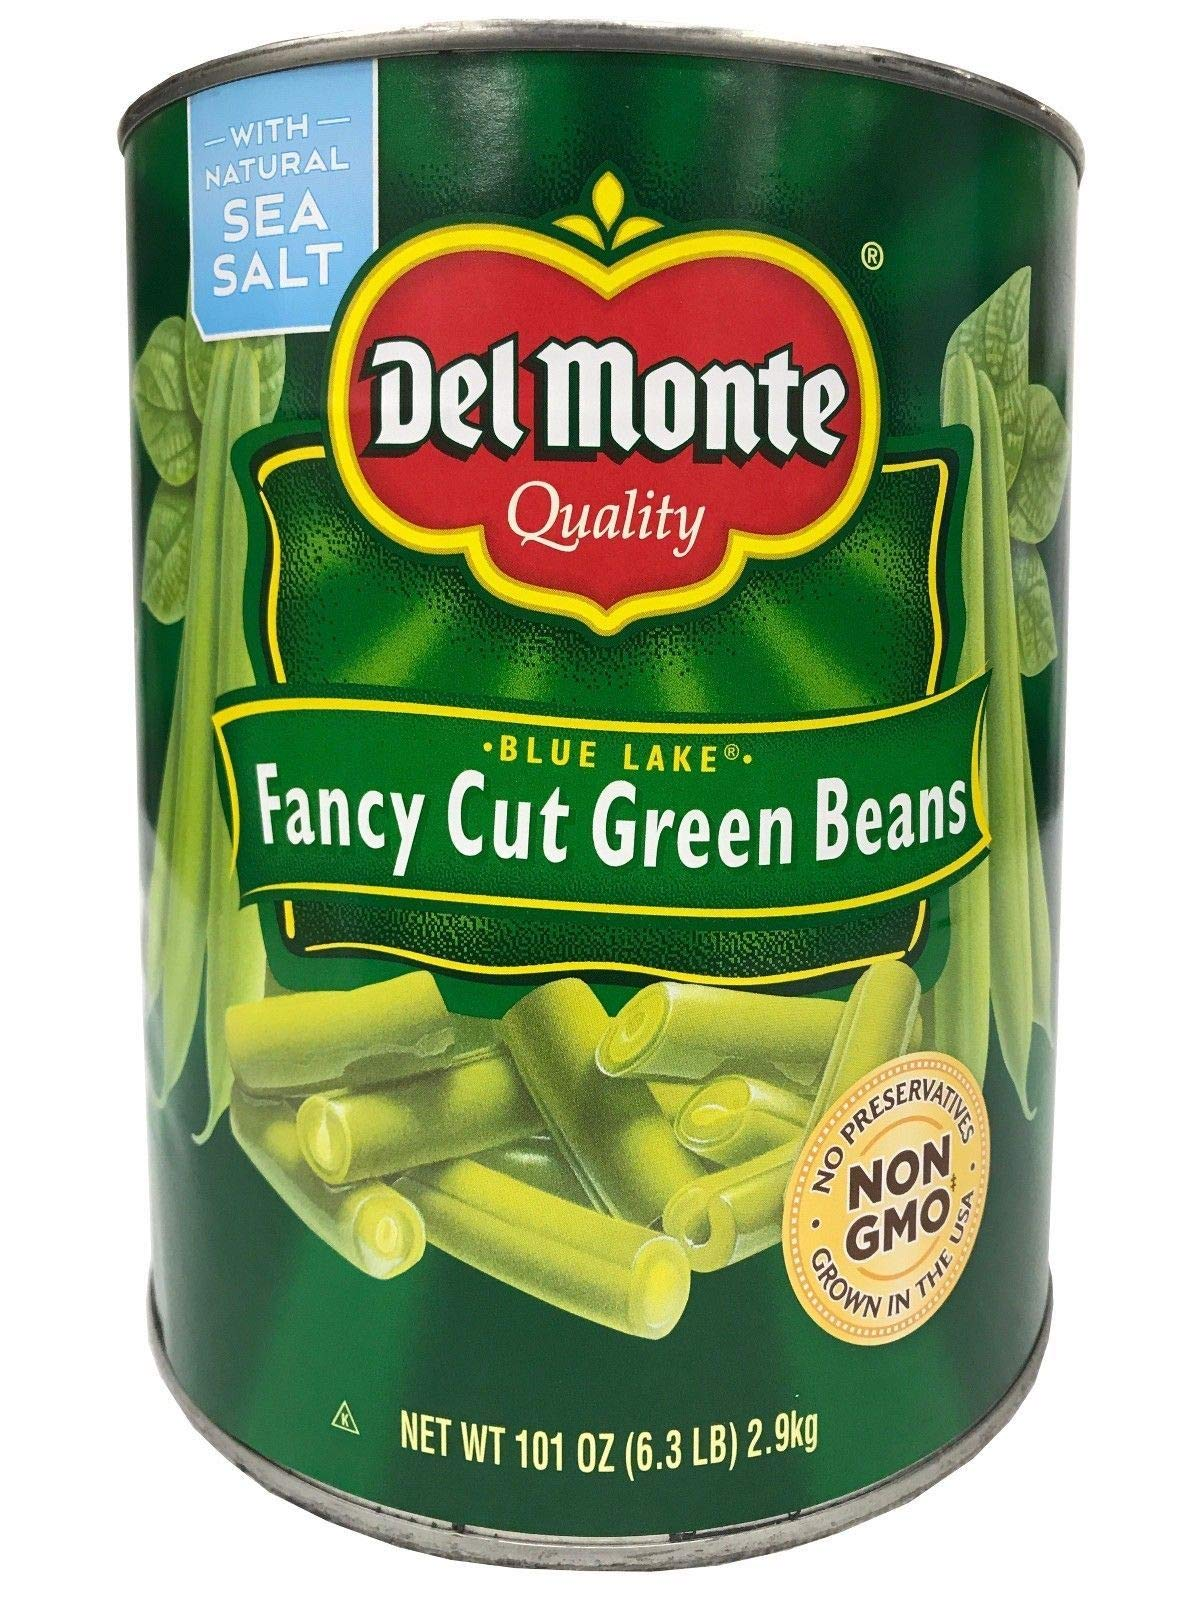 Del Monte Blue Lake Fancy Cut Green Beans Non-GMO/No Preservatives - 6.3 lbs Can (101 oz.)